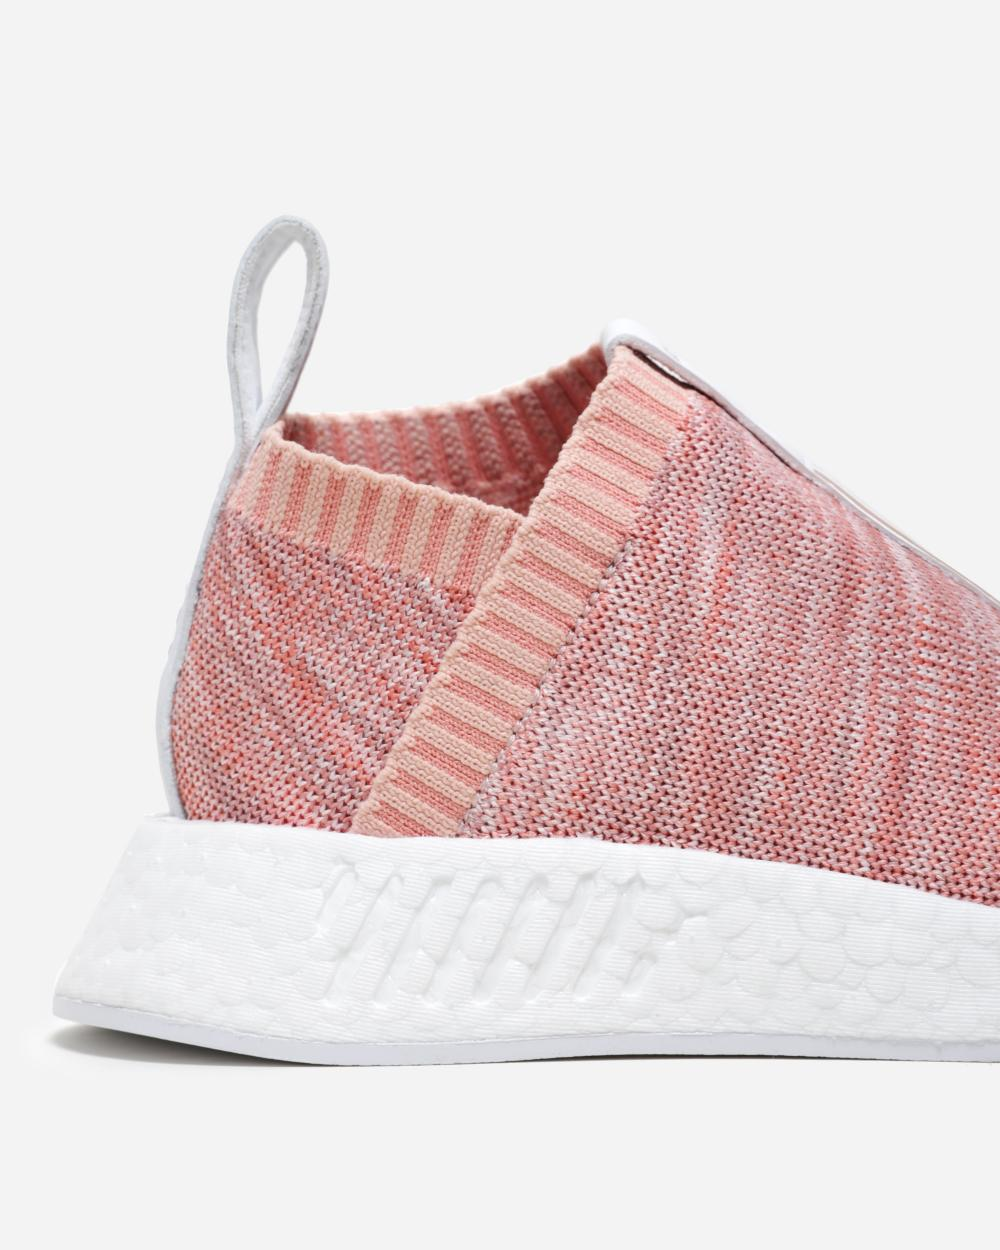 KITH x NAKED x adidas Consortium NMD CS2 BY2597 Pink 1